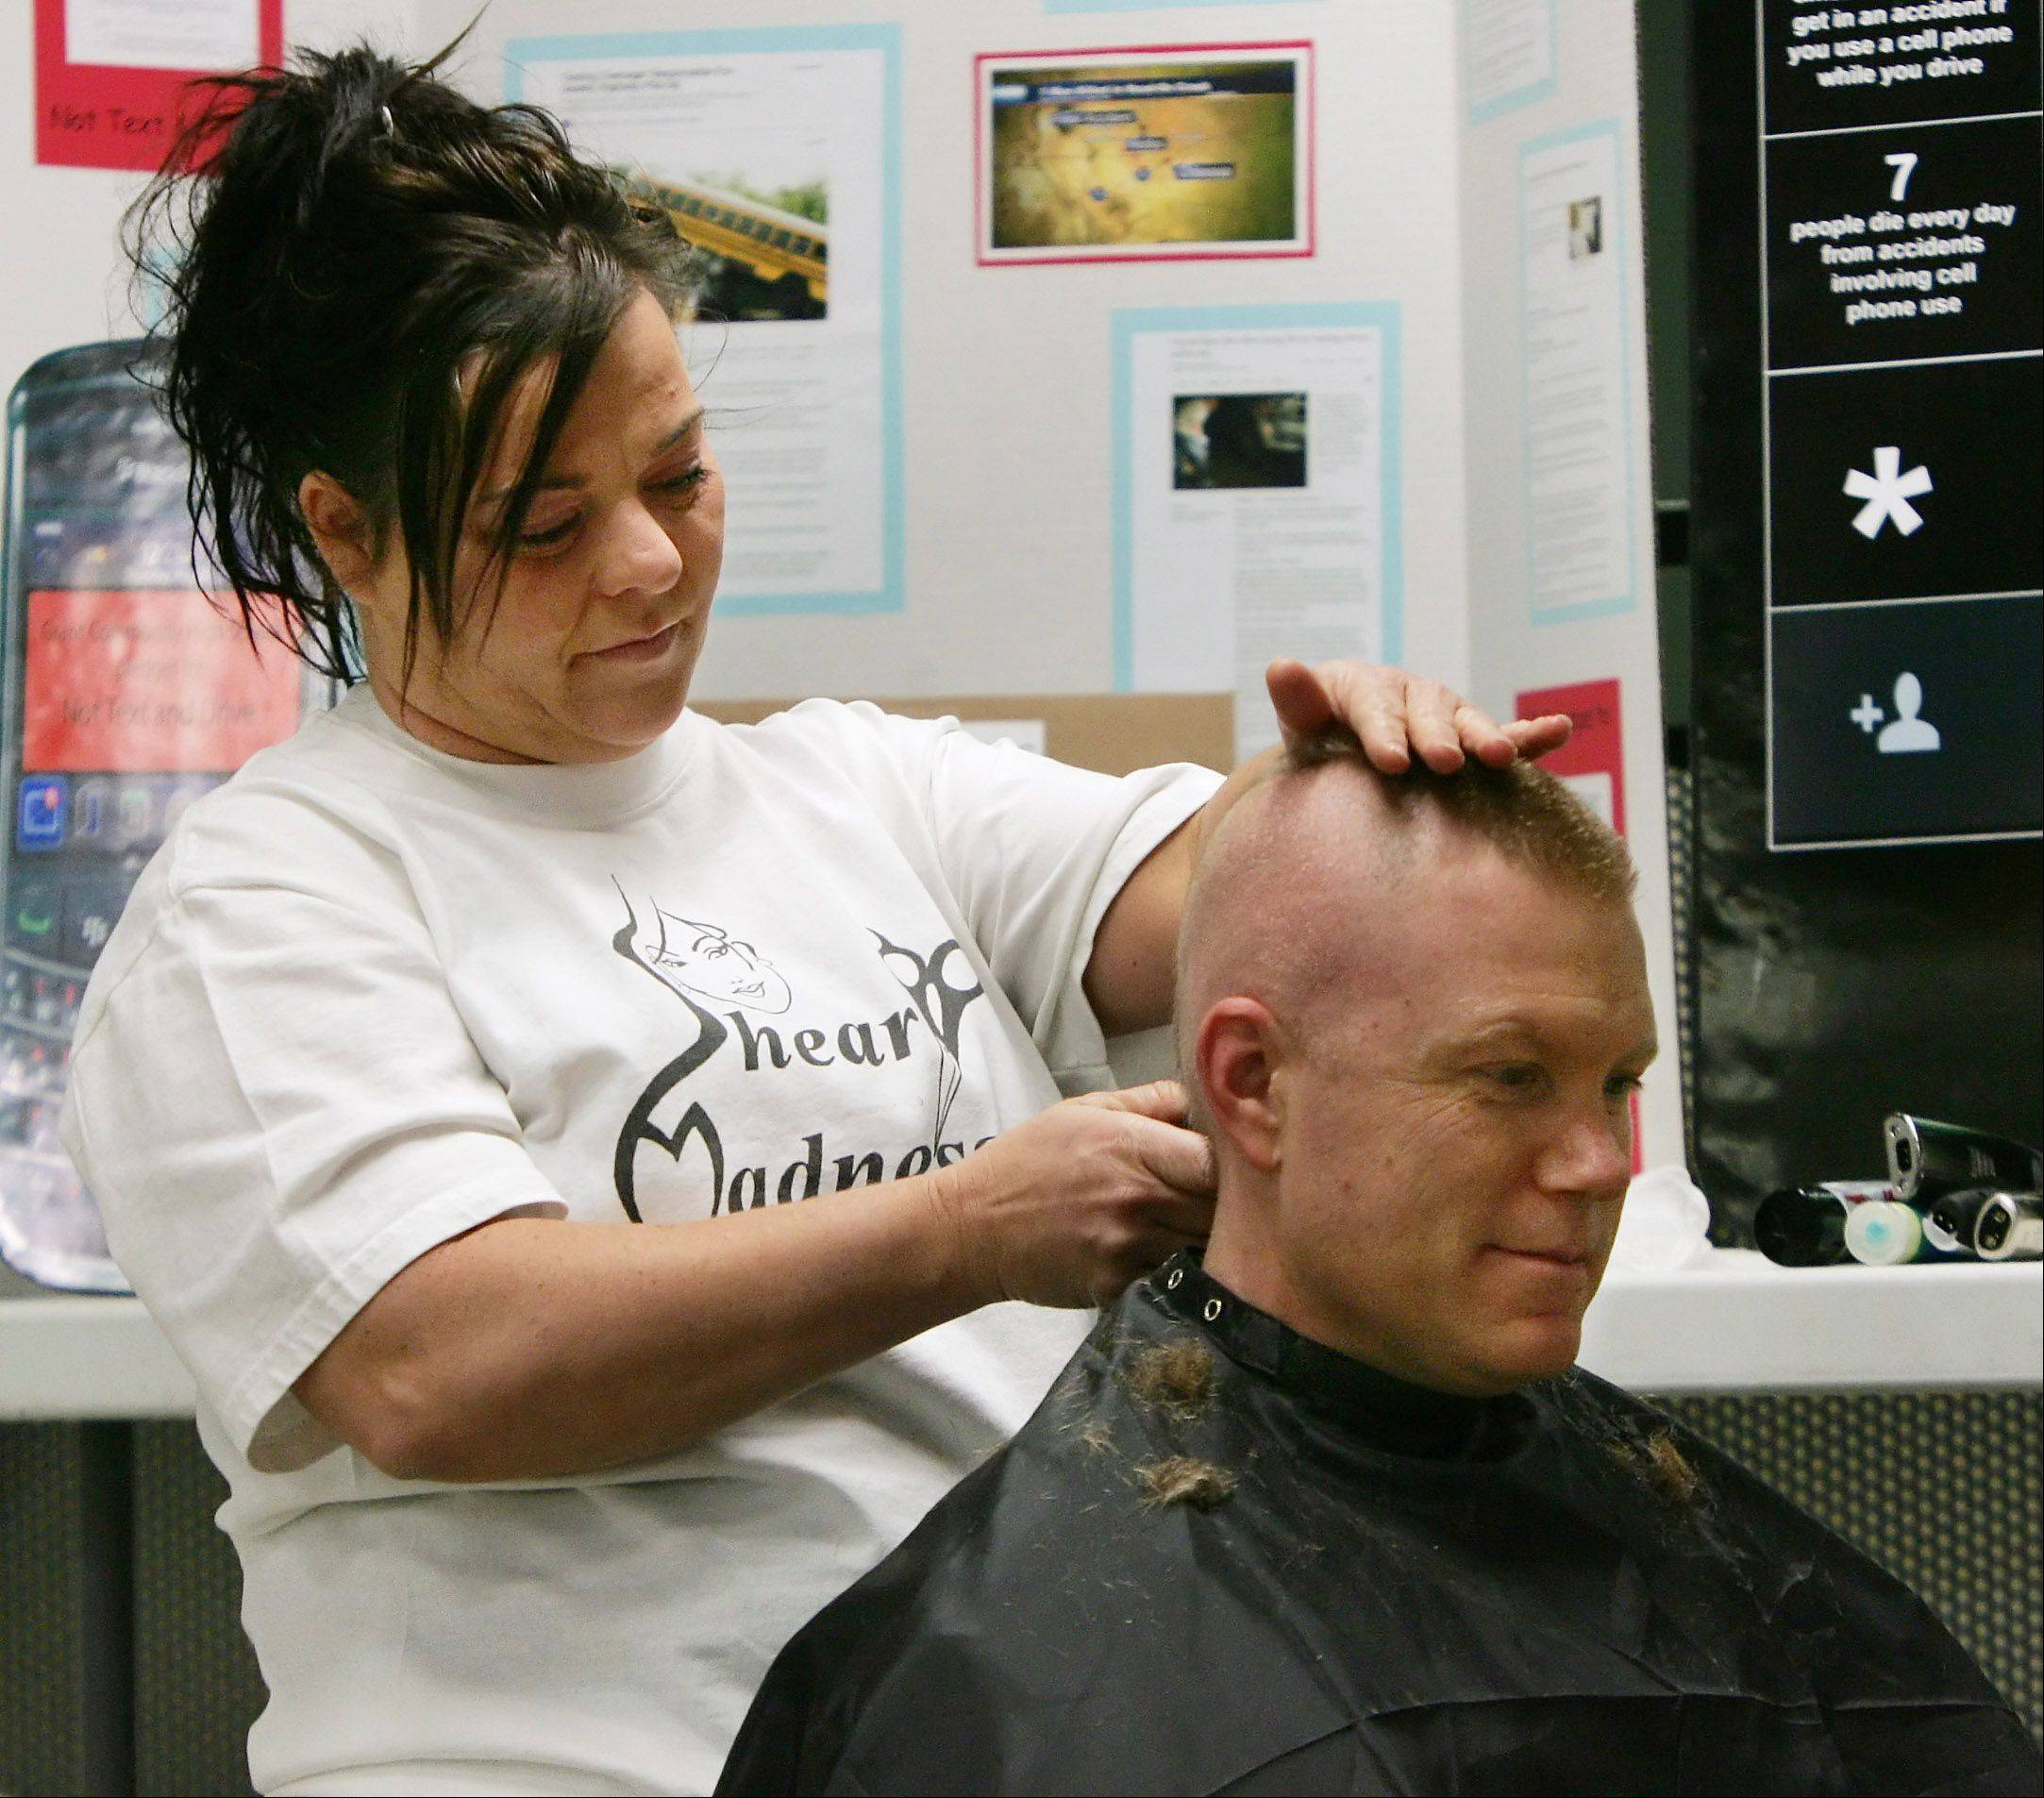 Fox Lake police officer Russell Zander, the resource officer at Grant High School, had his hair shaved into a mohawk style Wednesday after more than 850 students and staffers signed pledges promising not to text while driving.